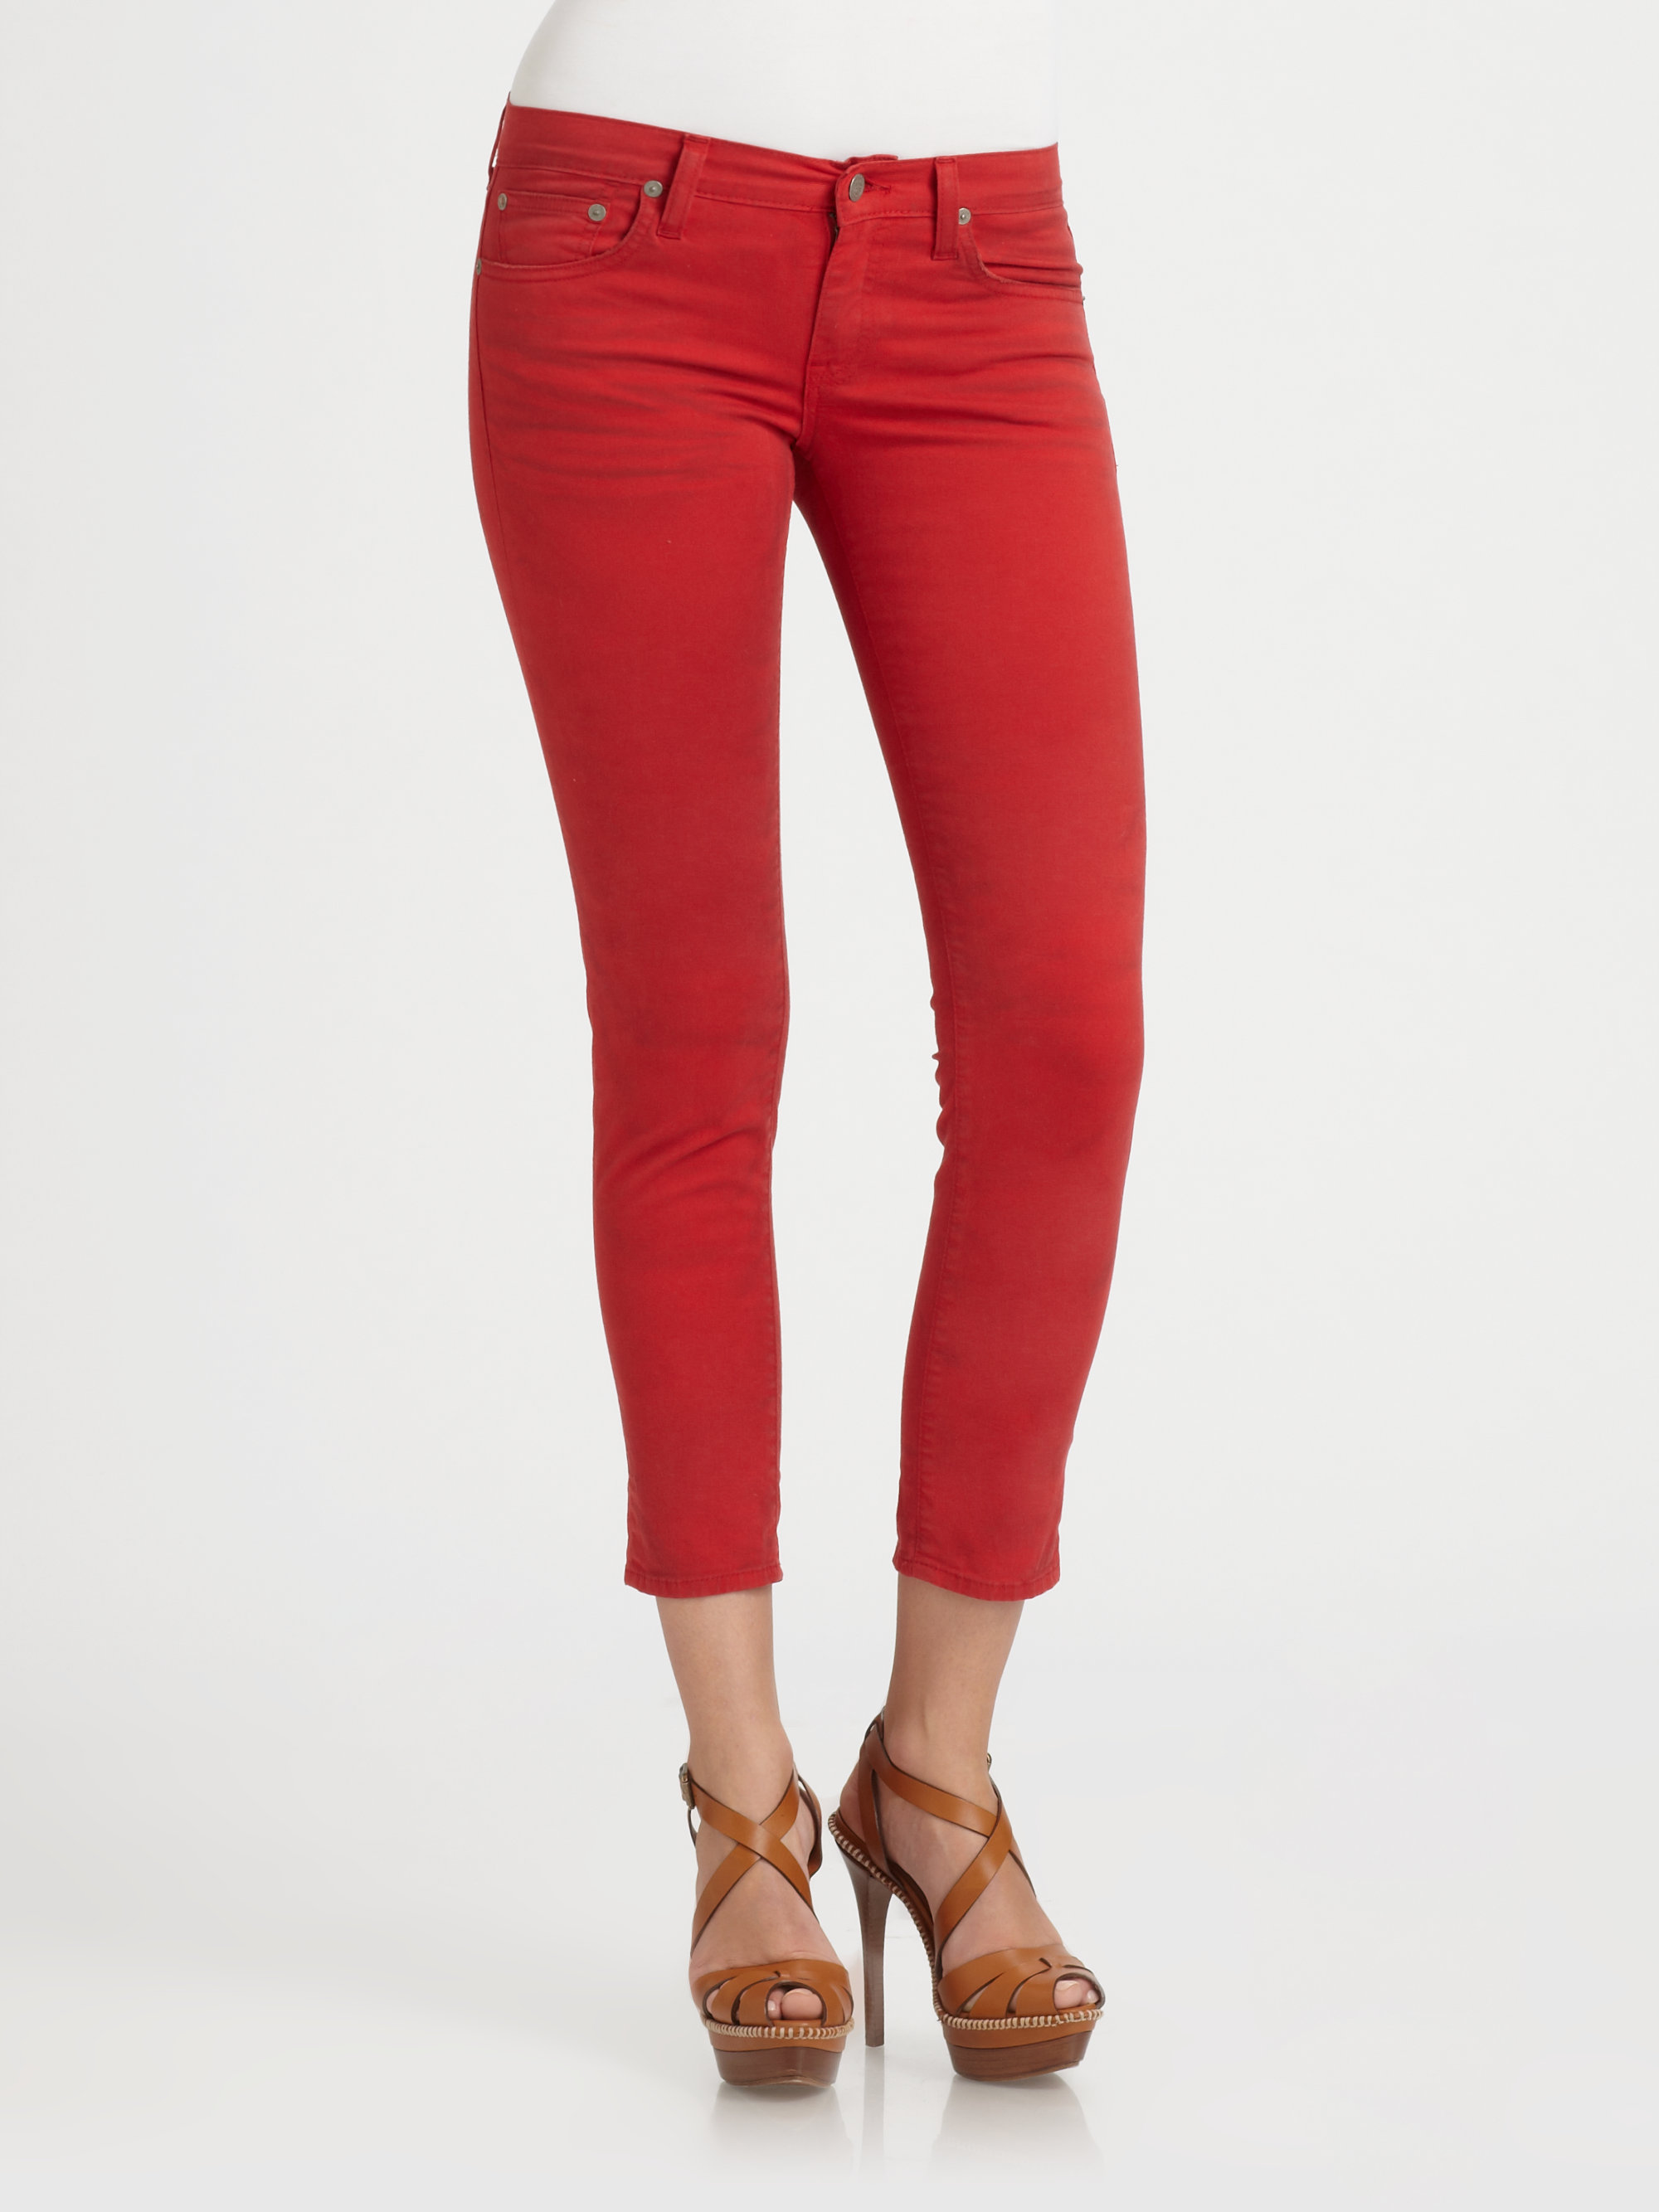 Find a great selection of cropped jeans for women at bierek.tk Shop by rise, wash, size, color, price and brand. Check out our entire collection. Free shipping & returns.